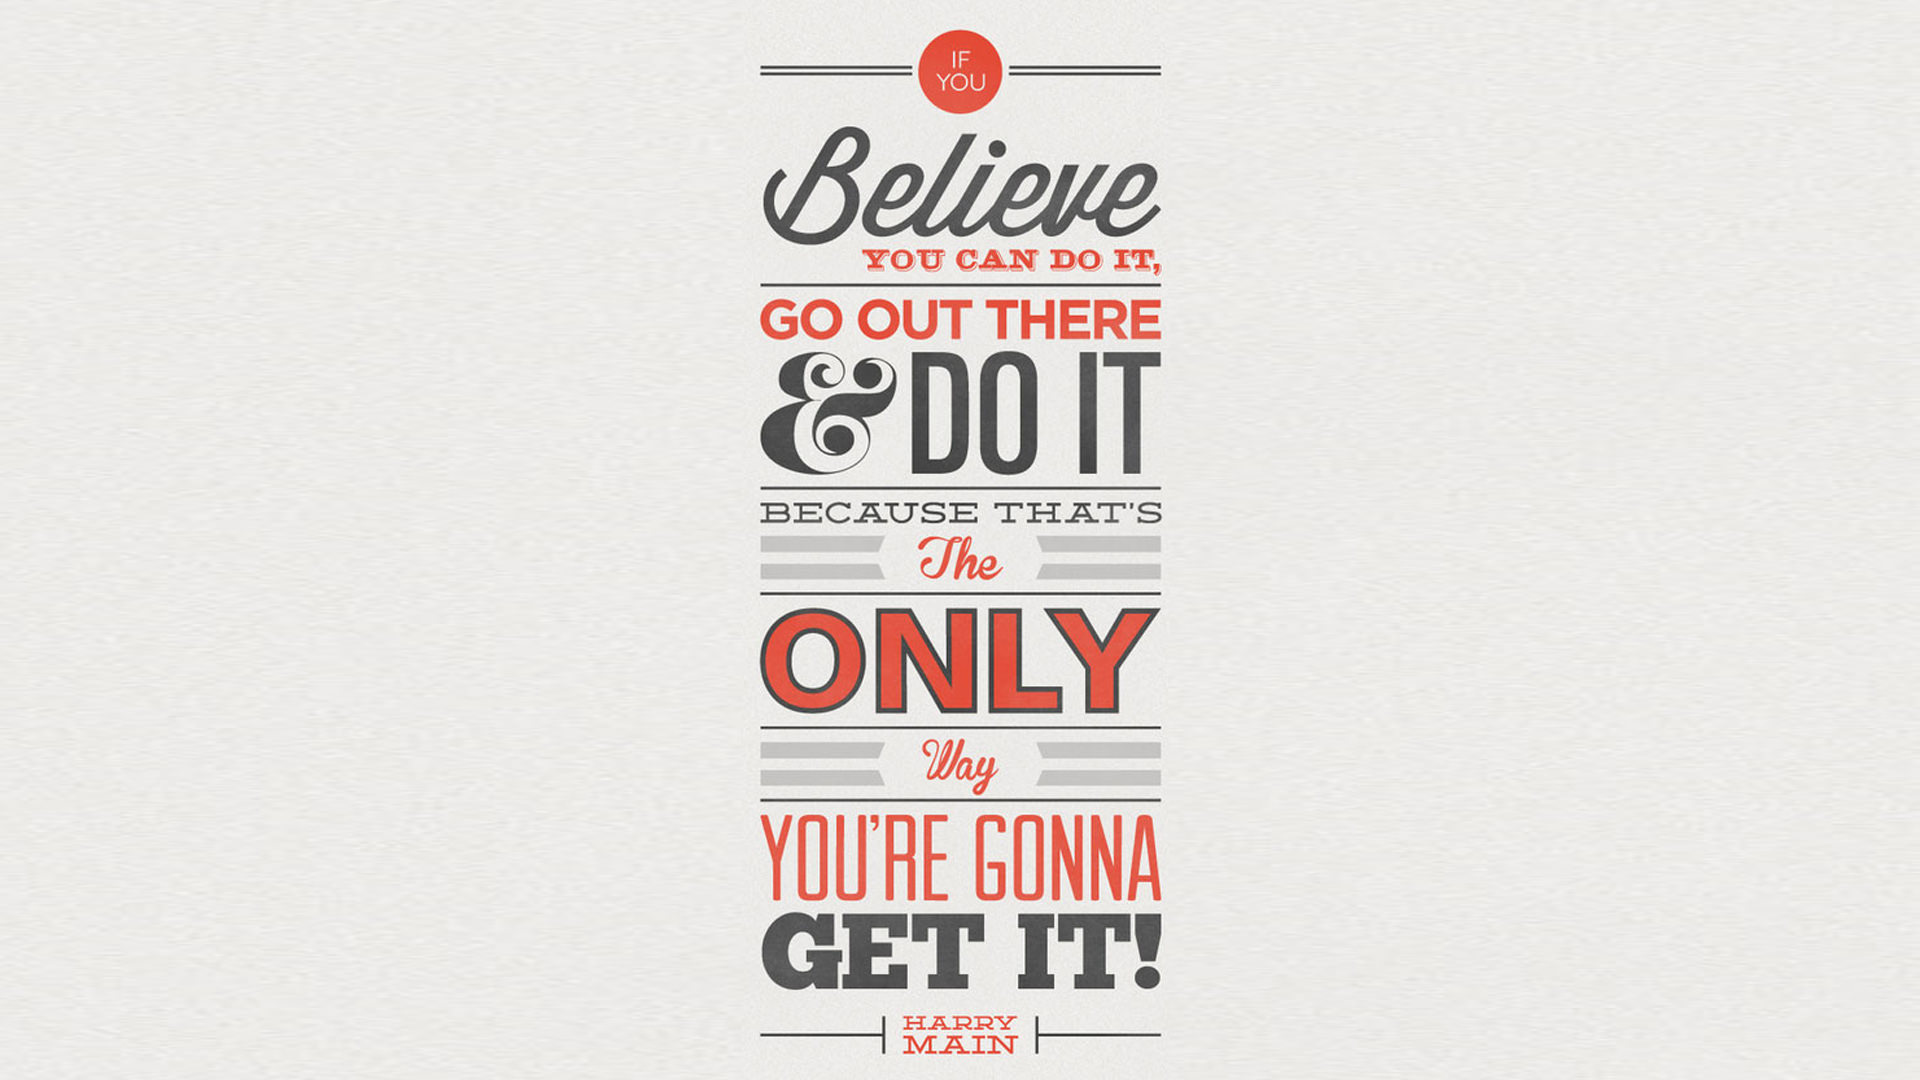 If You Believe You Can Do It, Go Out There And Do It, Because That Is The  Only Way You Are Gonna Get It!